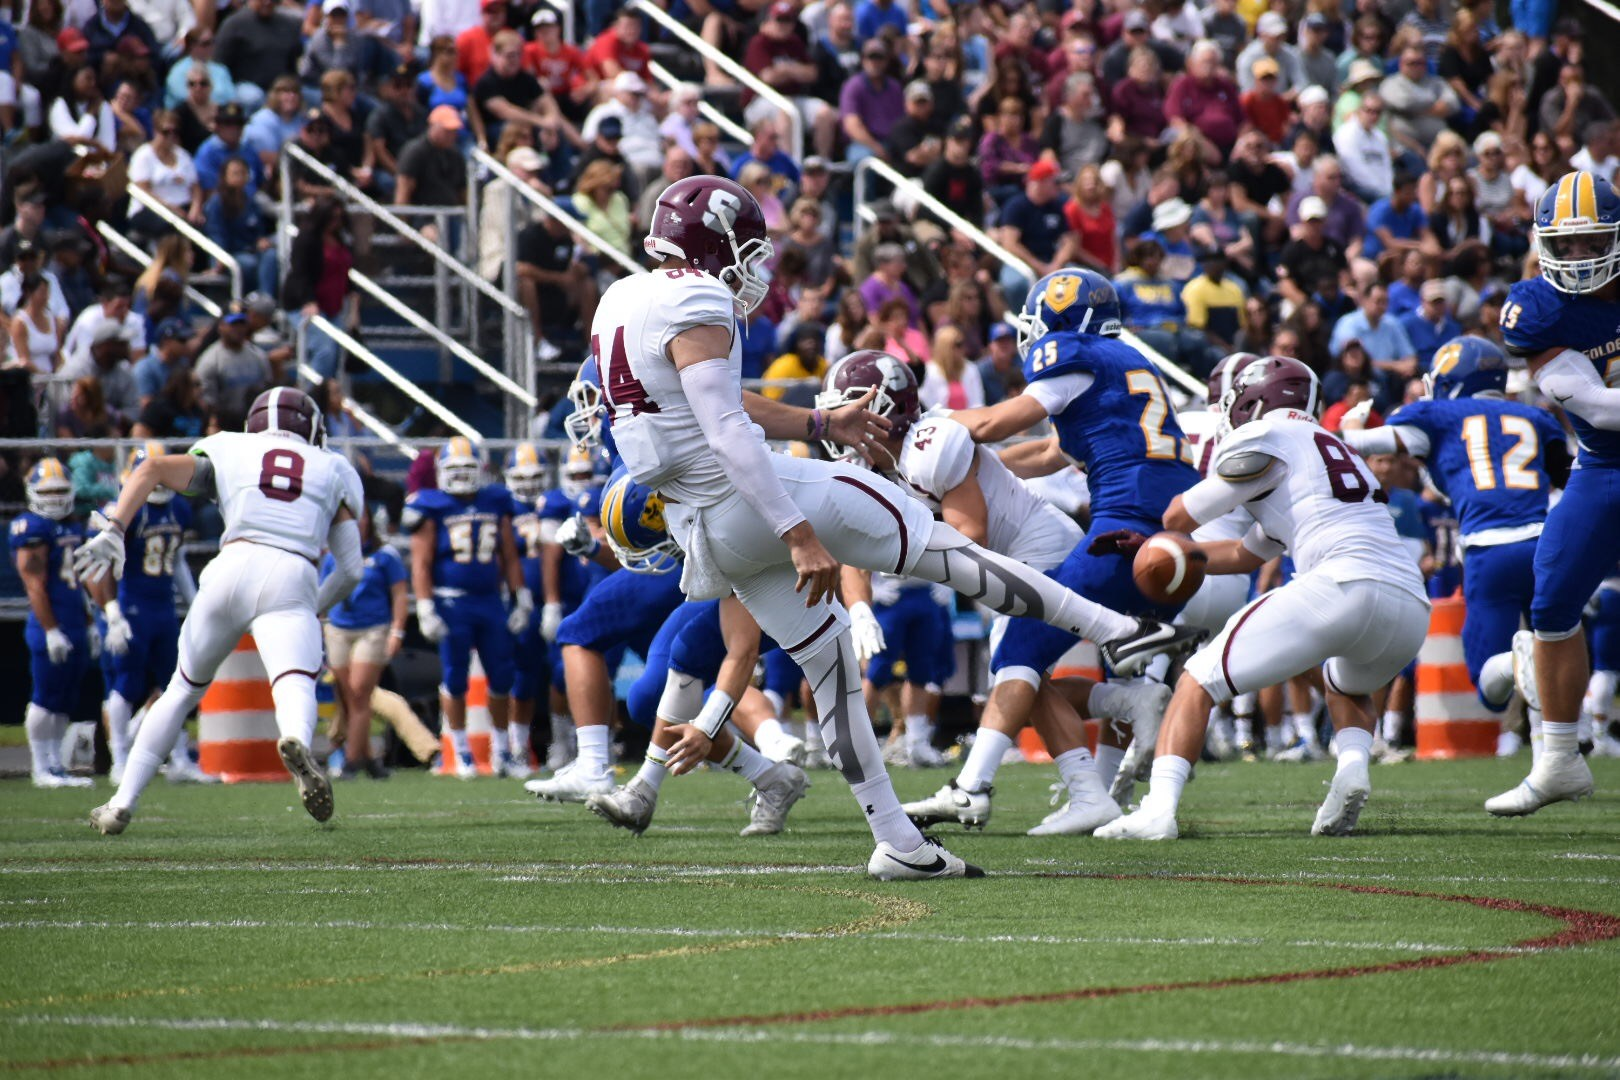 Whit DeVaux, Hartford CT/Springfield MA Area  Whit was a four year starter for Springfield College where he was also a DIII All American Track Athlete. Whit is currently pursuing NFL Free Agency as a Punter.